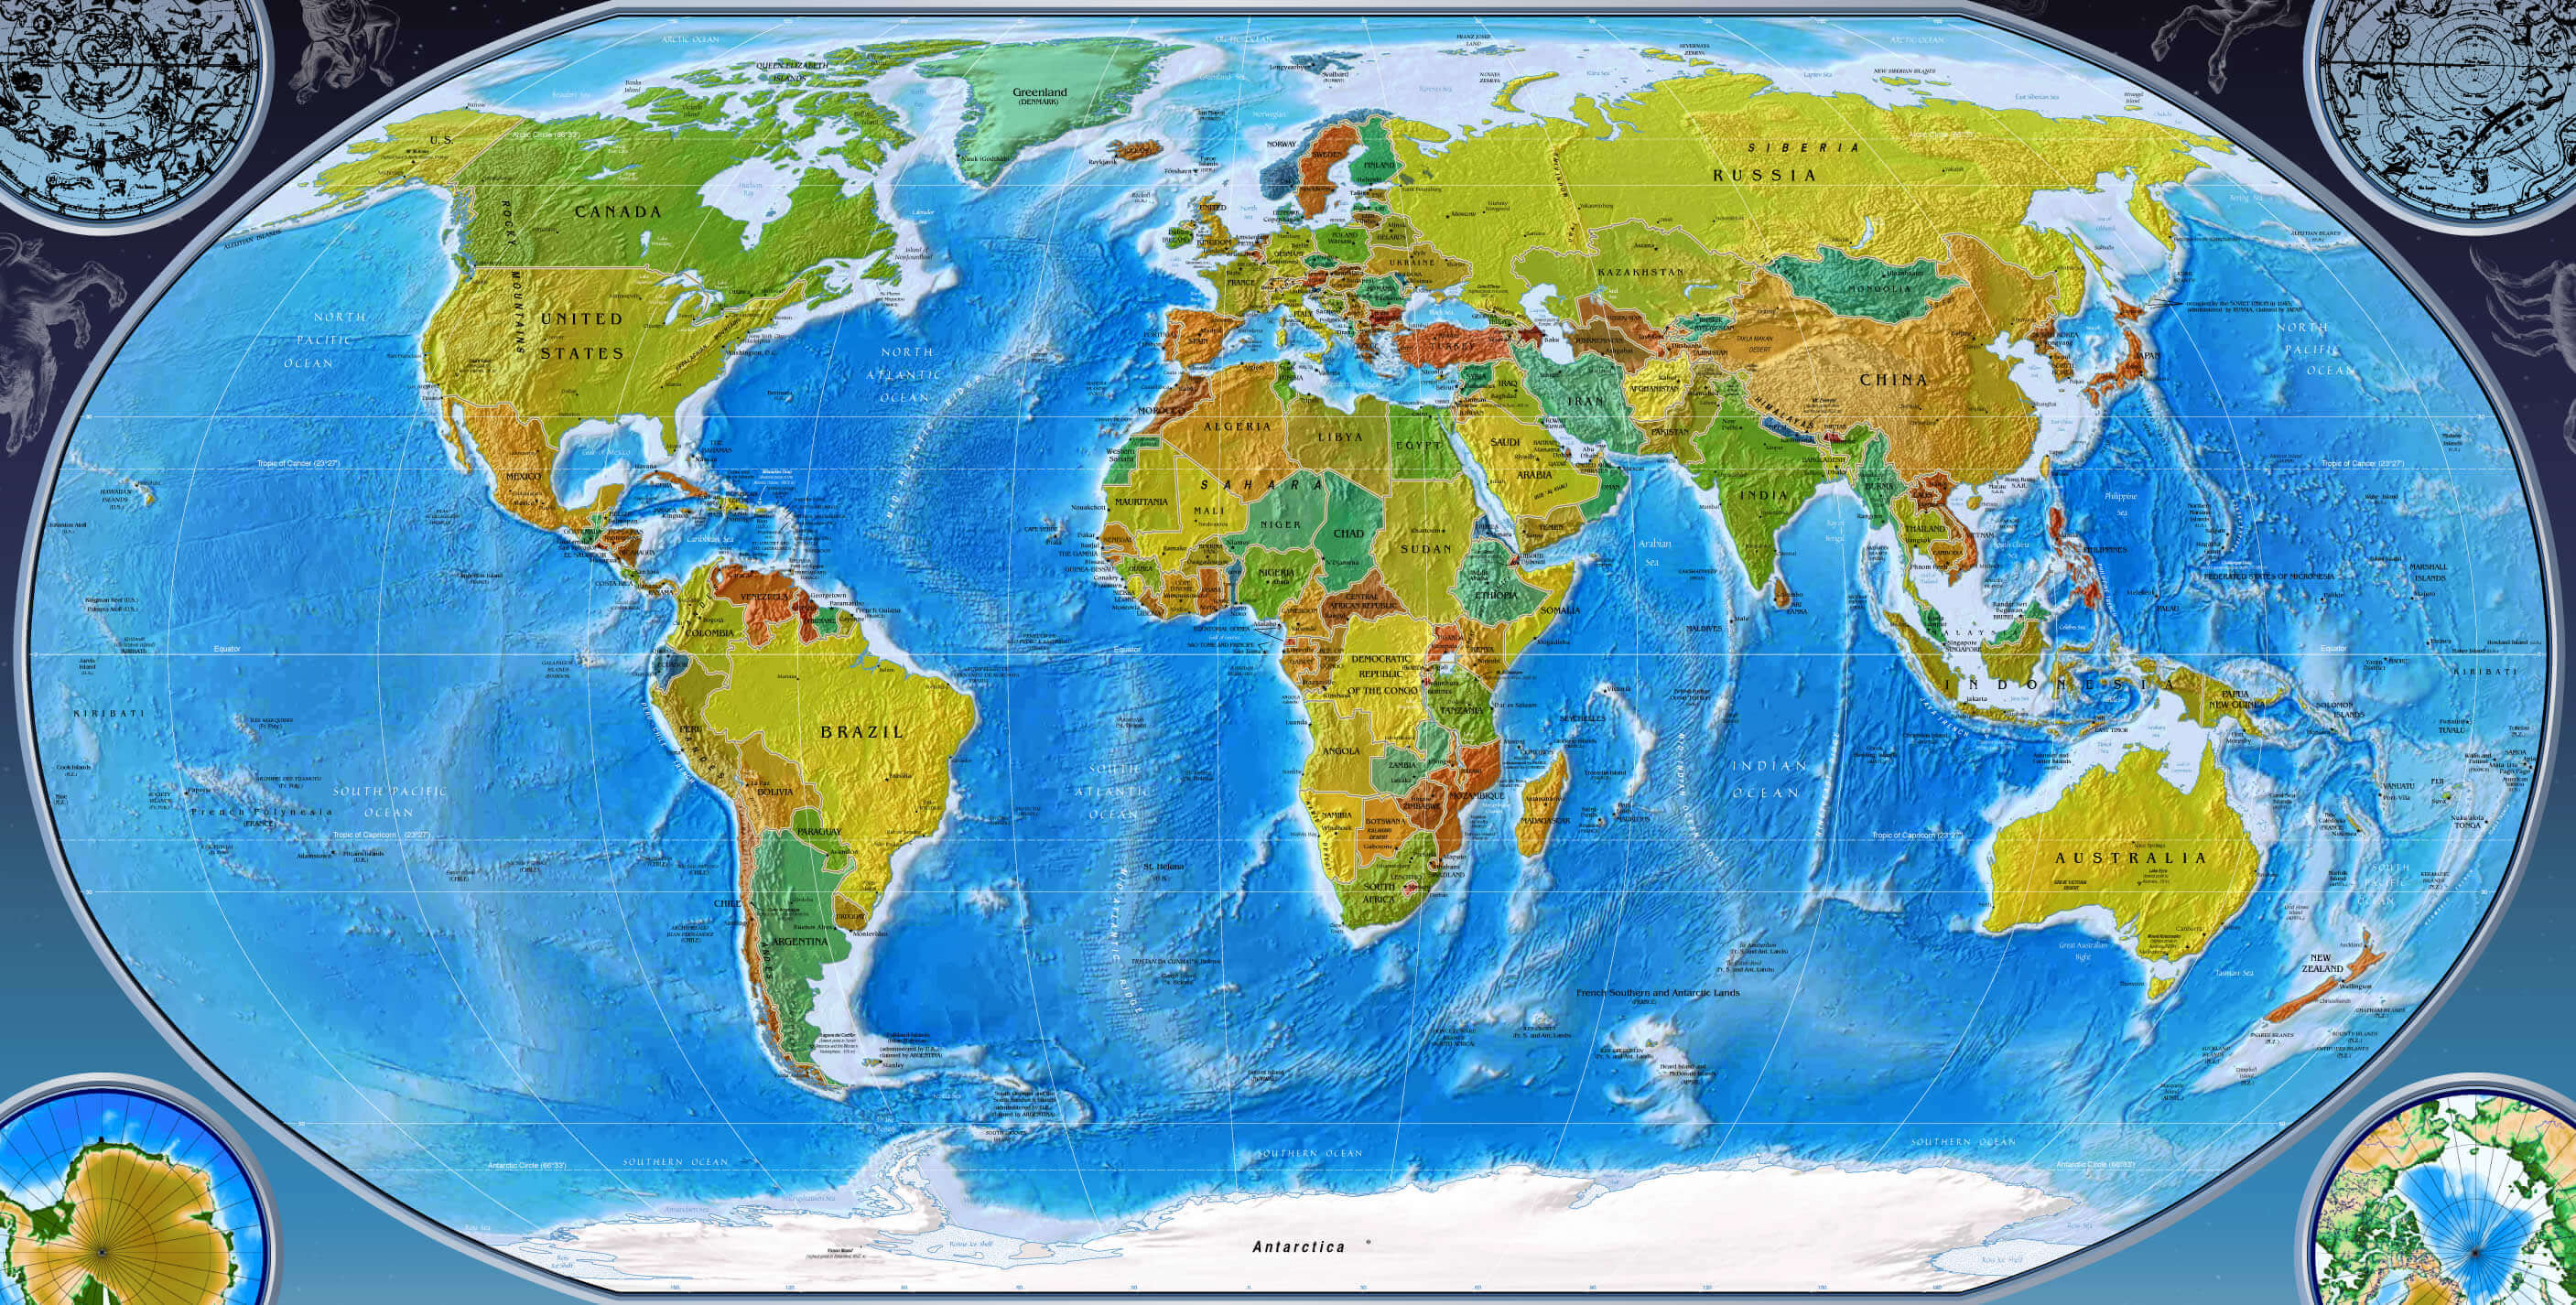 A Physical Map Of The World.World Physical Maps Guide Of The World